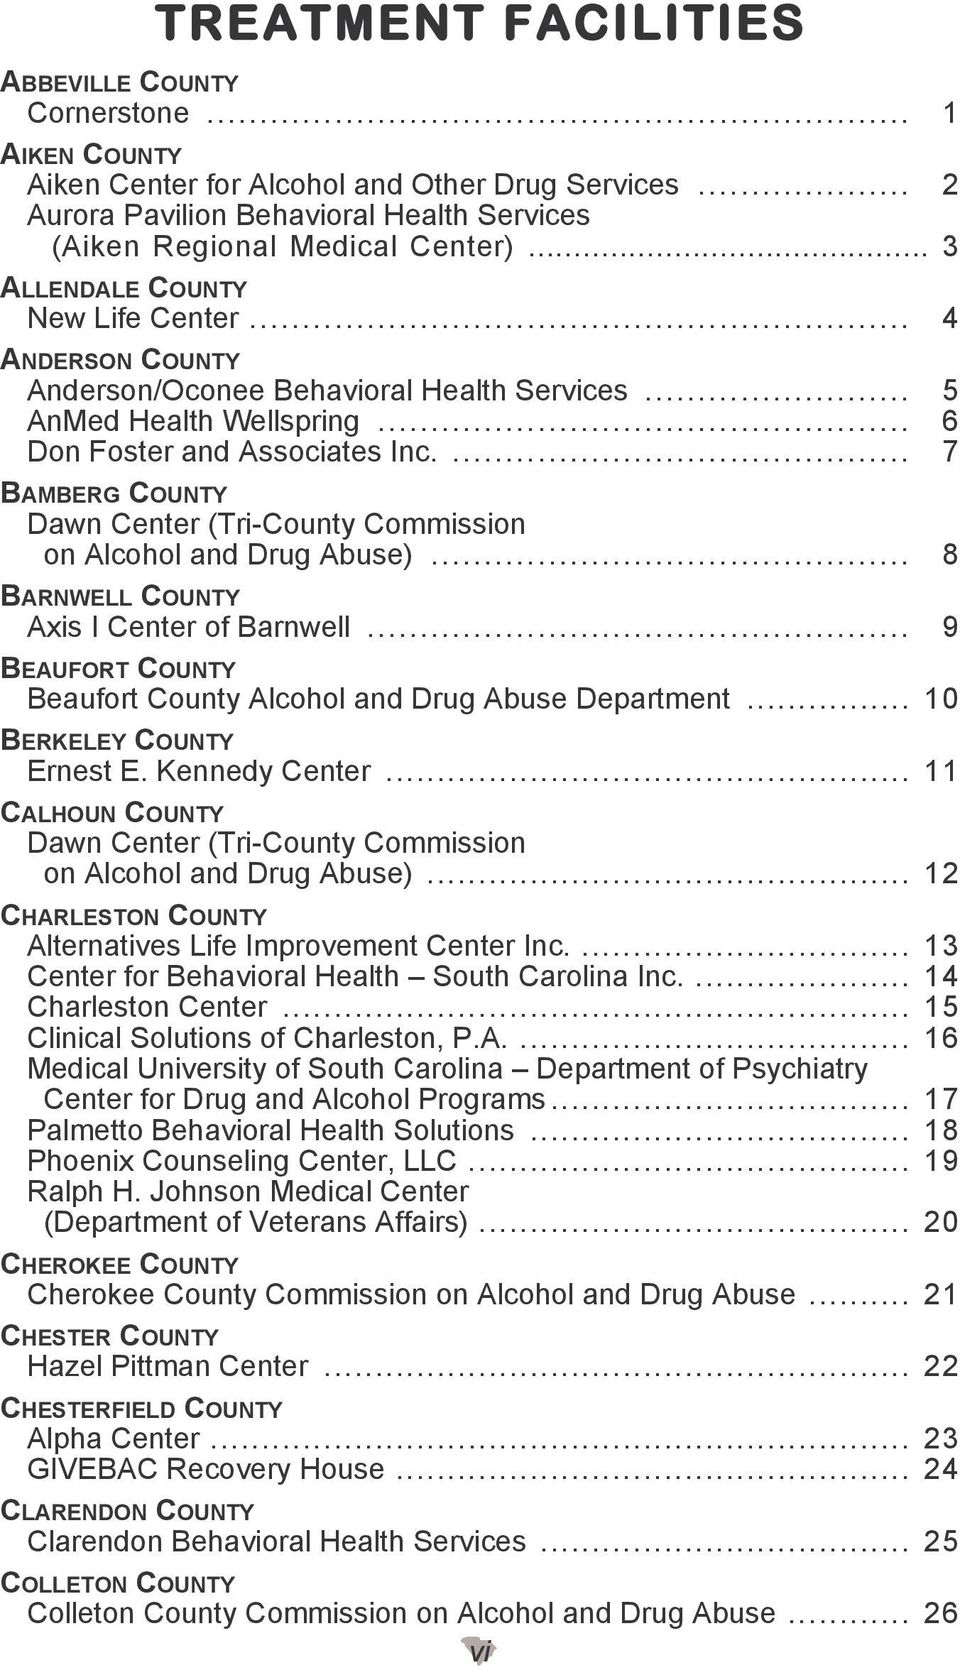 ... 7 BAMBERG COUNTY Dawn Center (Tri-County Commission on Alcohol and Drug Abuse)... 8 BARNWELL COUNTY Axis I Center of Barnwell... 9 BEAUFORT COUNTY Beaufort County Alcohol and Drug Abuse Department.